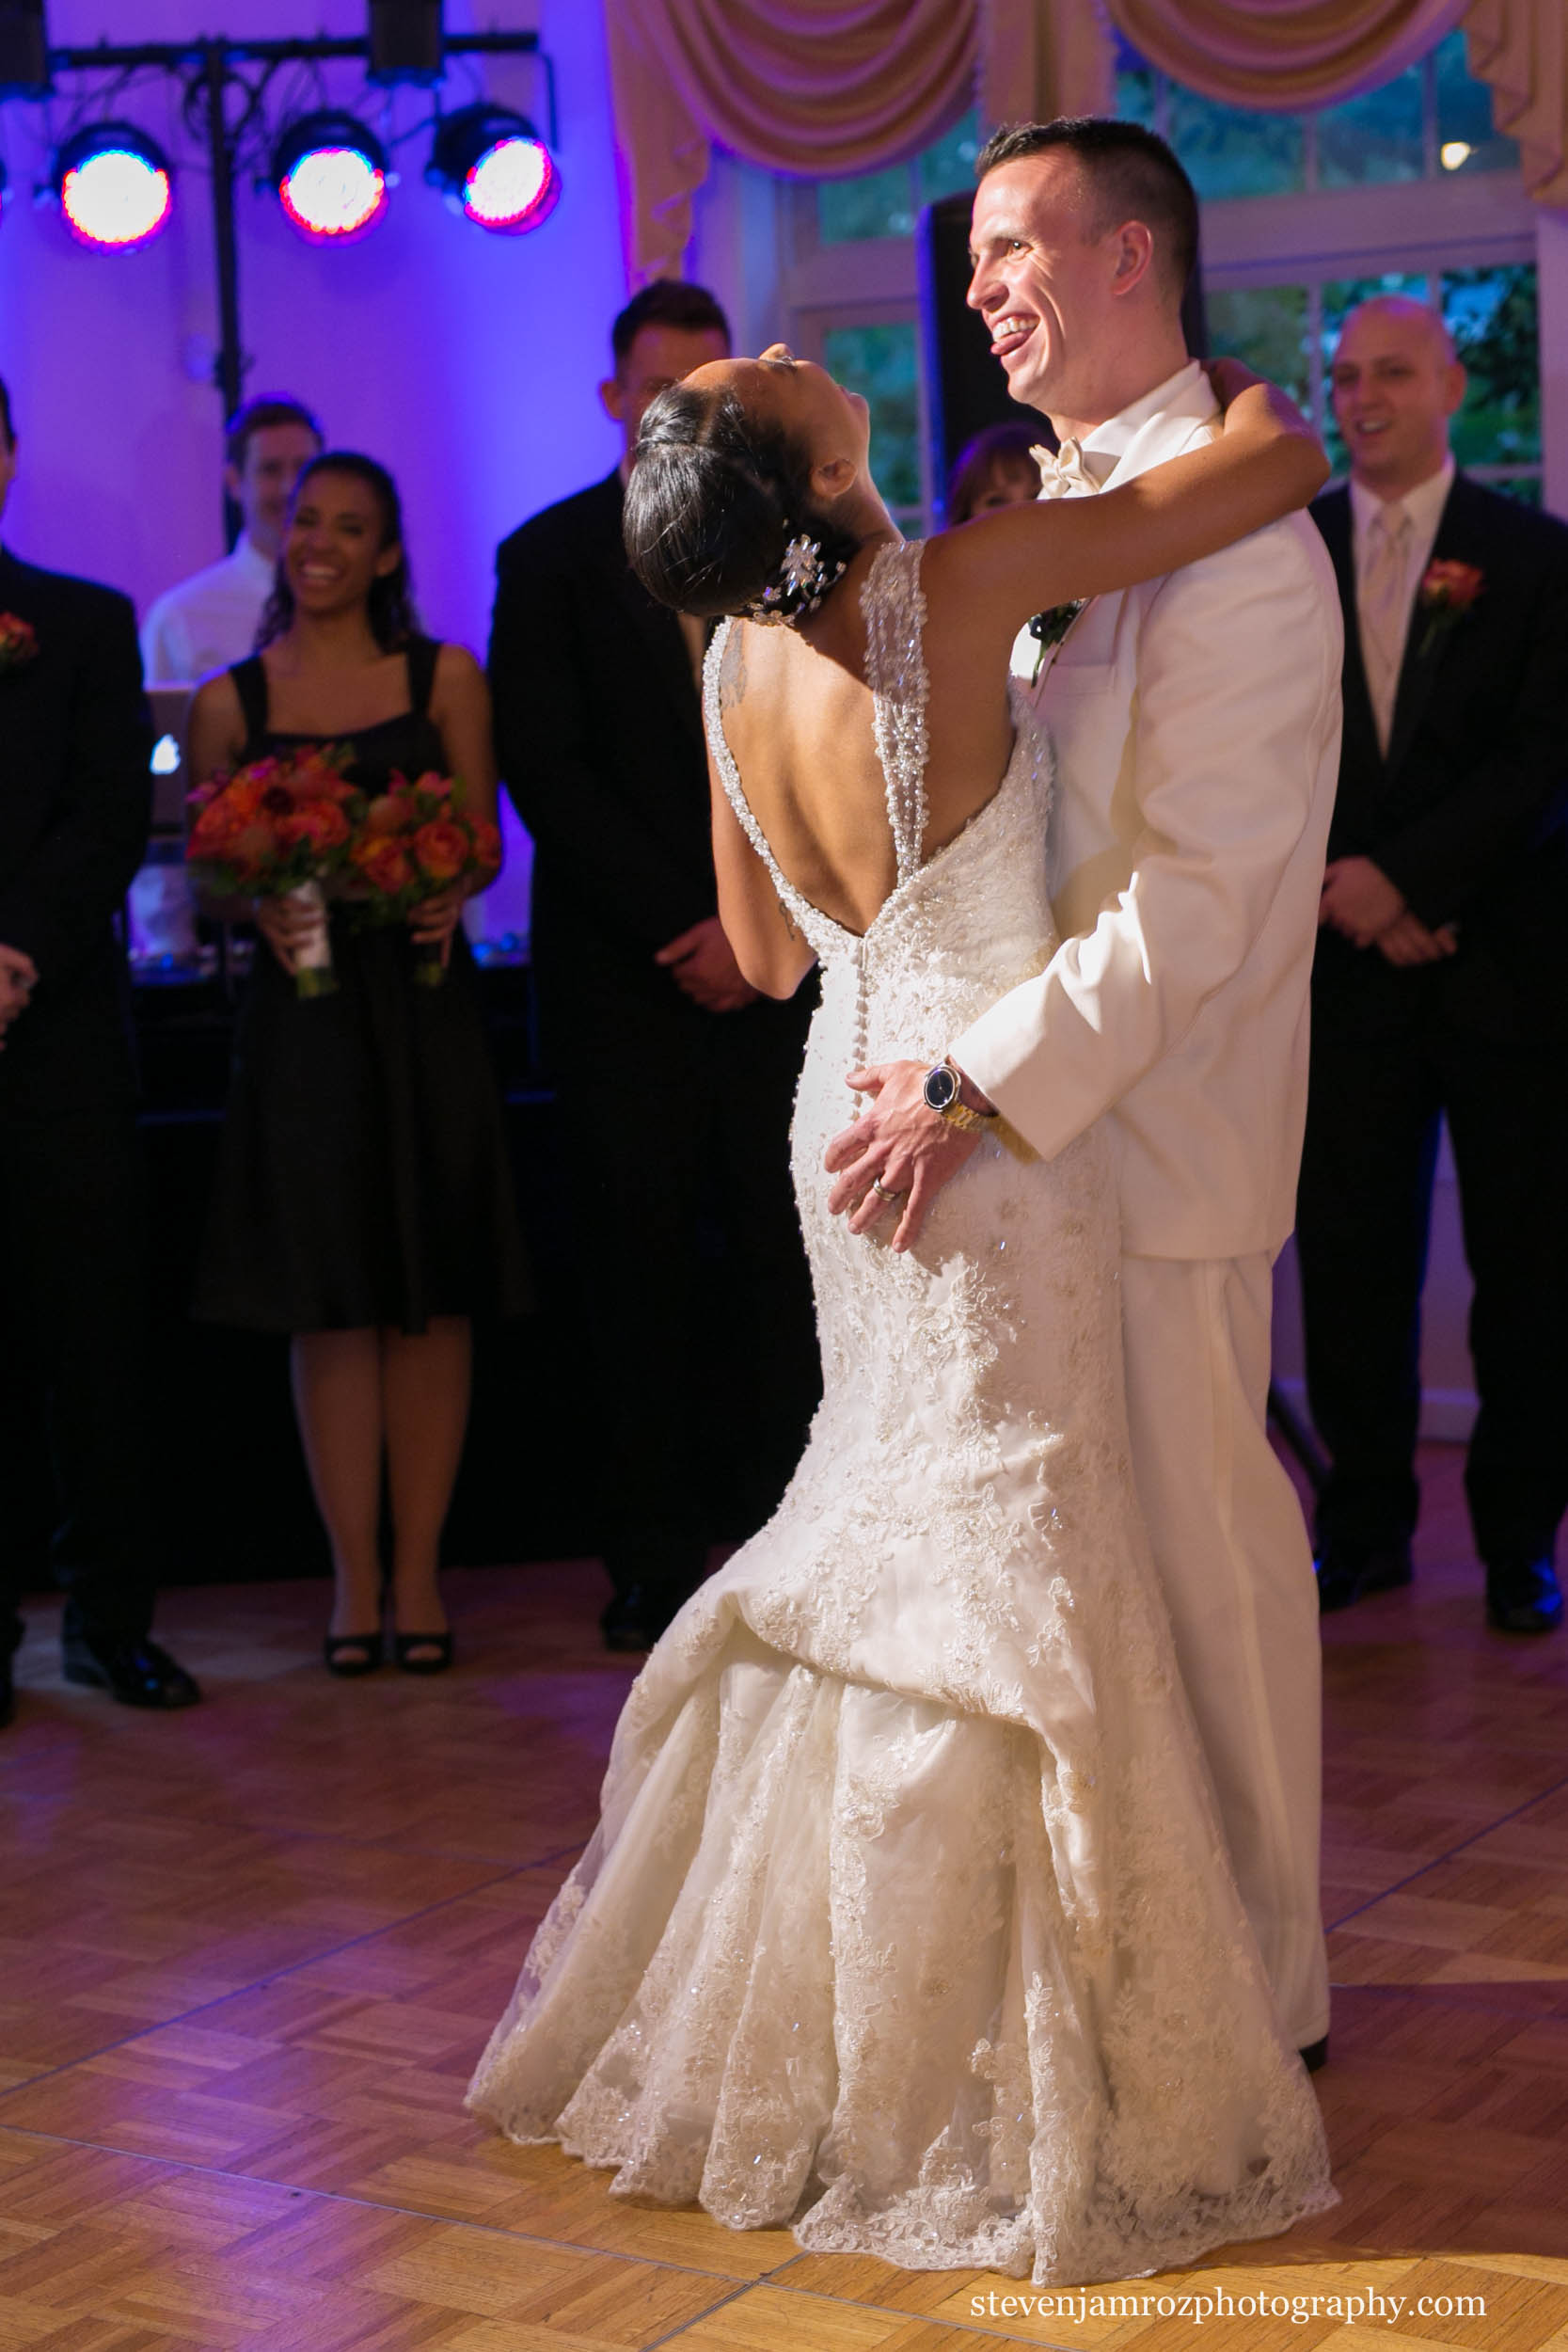 groom-grabs-brides-butt-first-dance-raleigh-photojournalism-0798.jpg